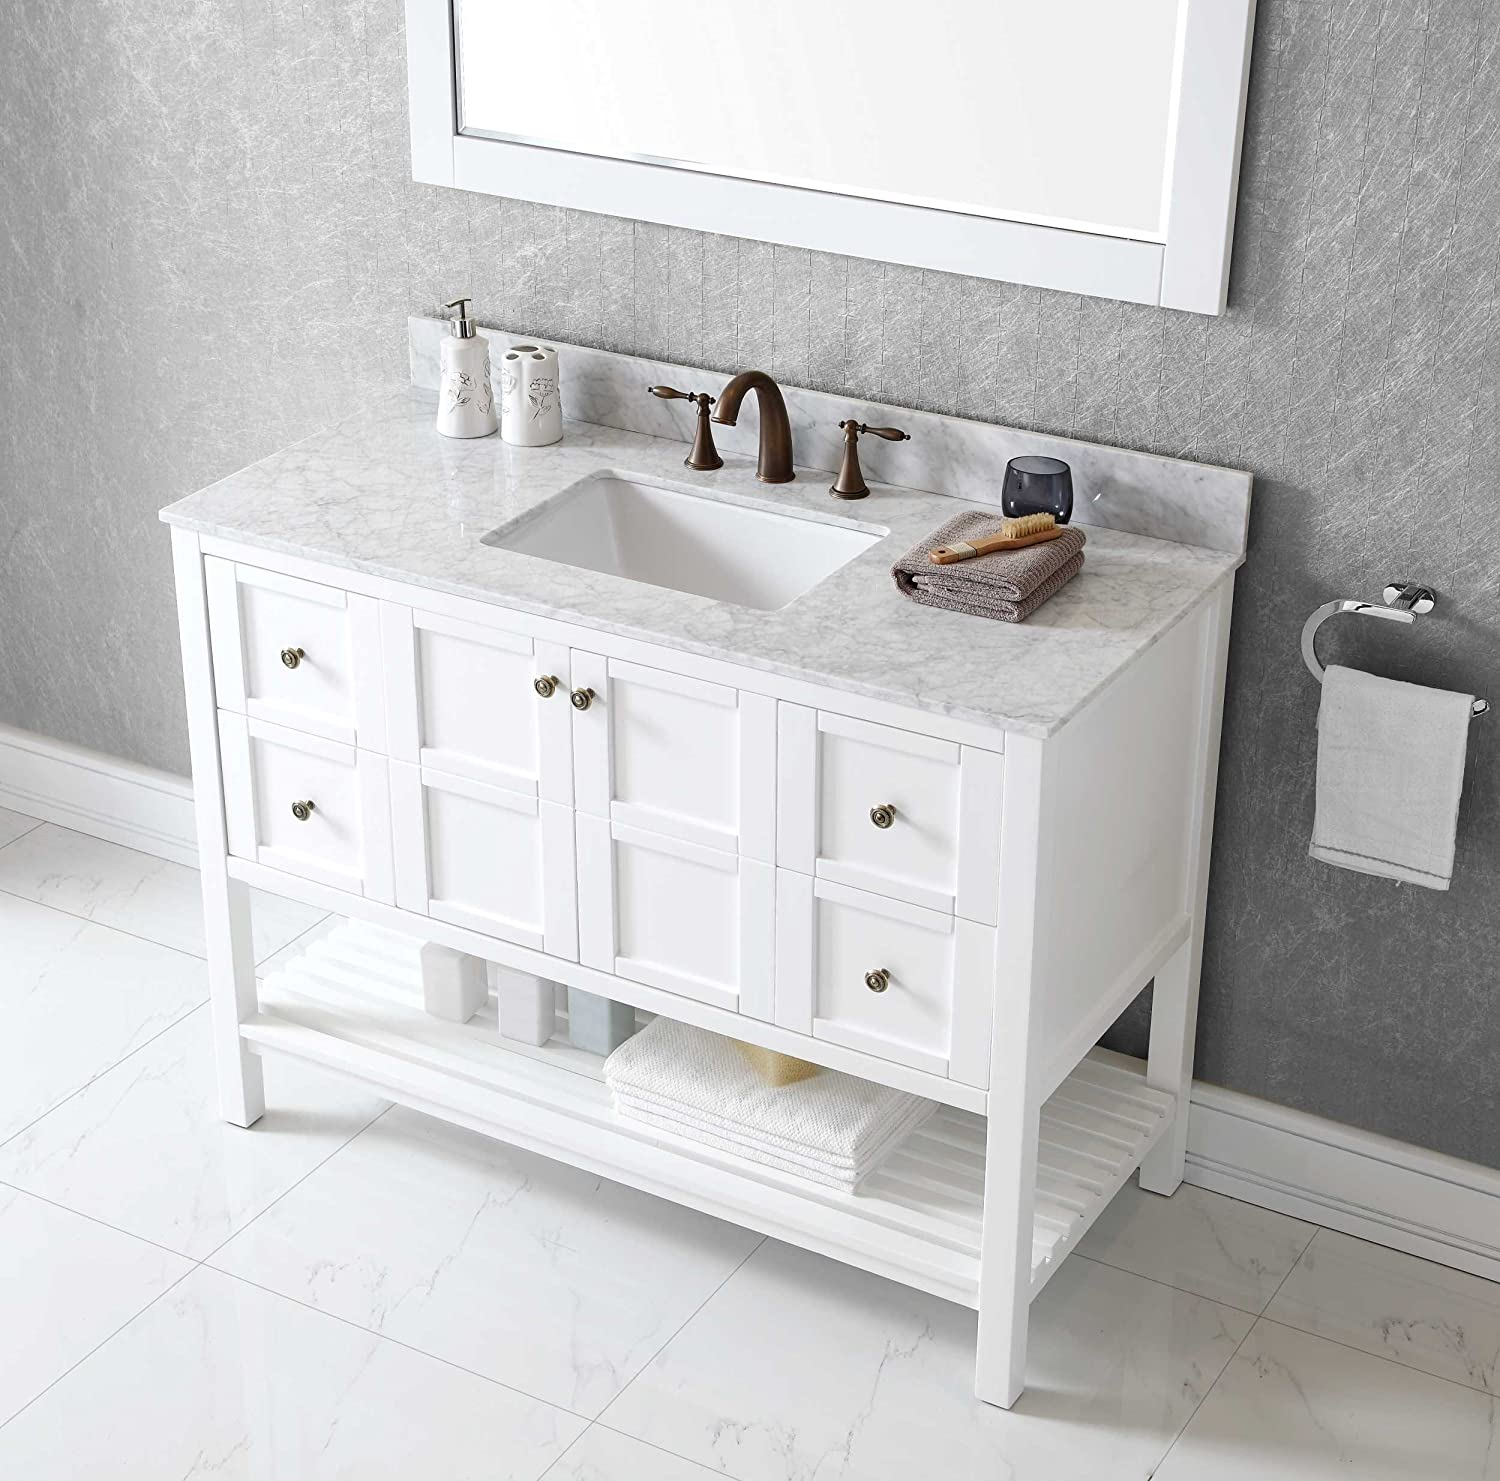 Virtu ESWMSQWH Winterfell Single Bathroom Vanity Cabinet - Single bathroom vanity cabinets